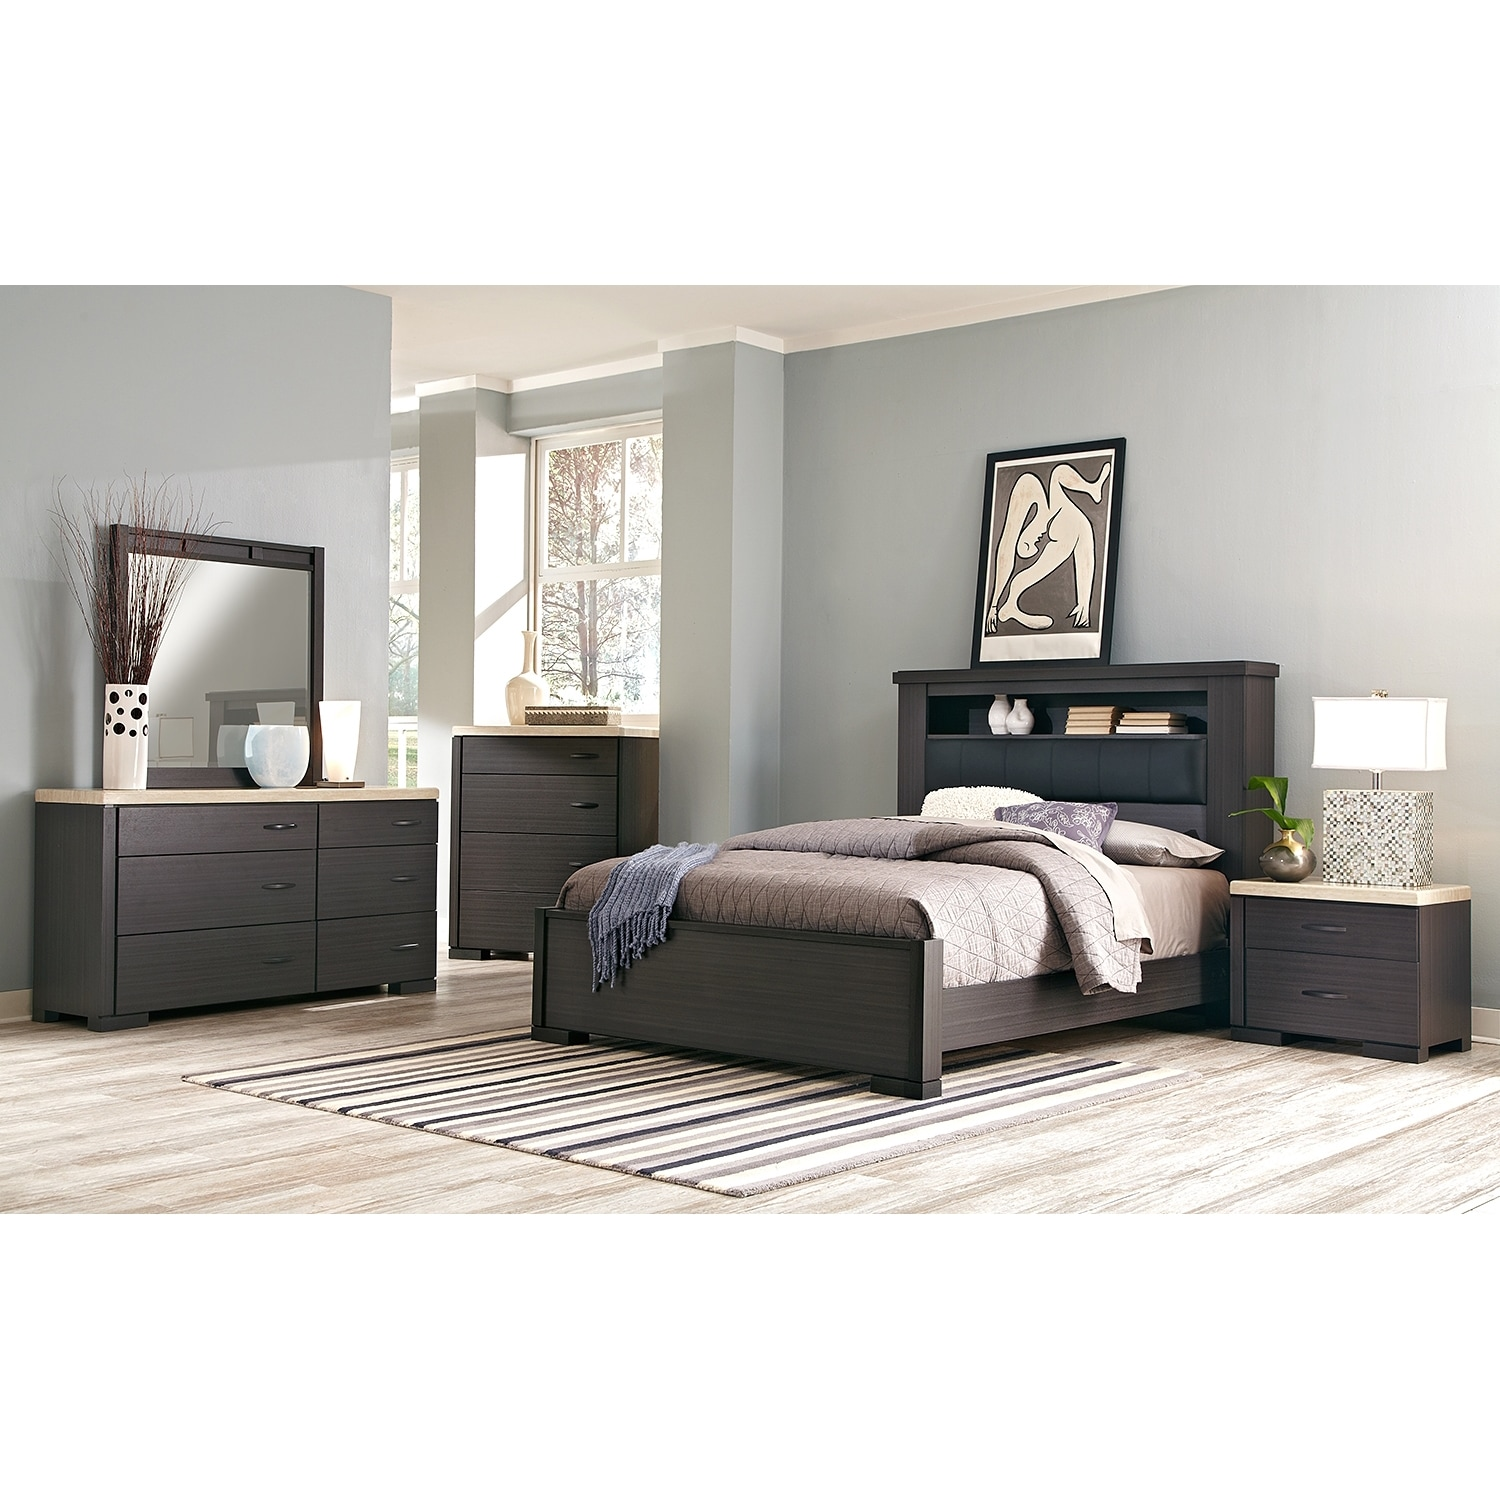 Camino 7-Piece King Bedroom Set - Charcoal and Ivory